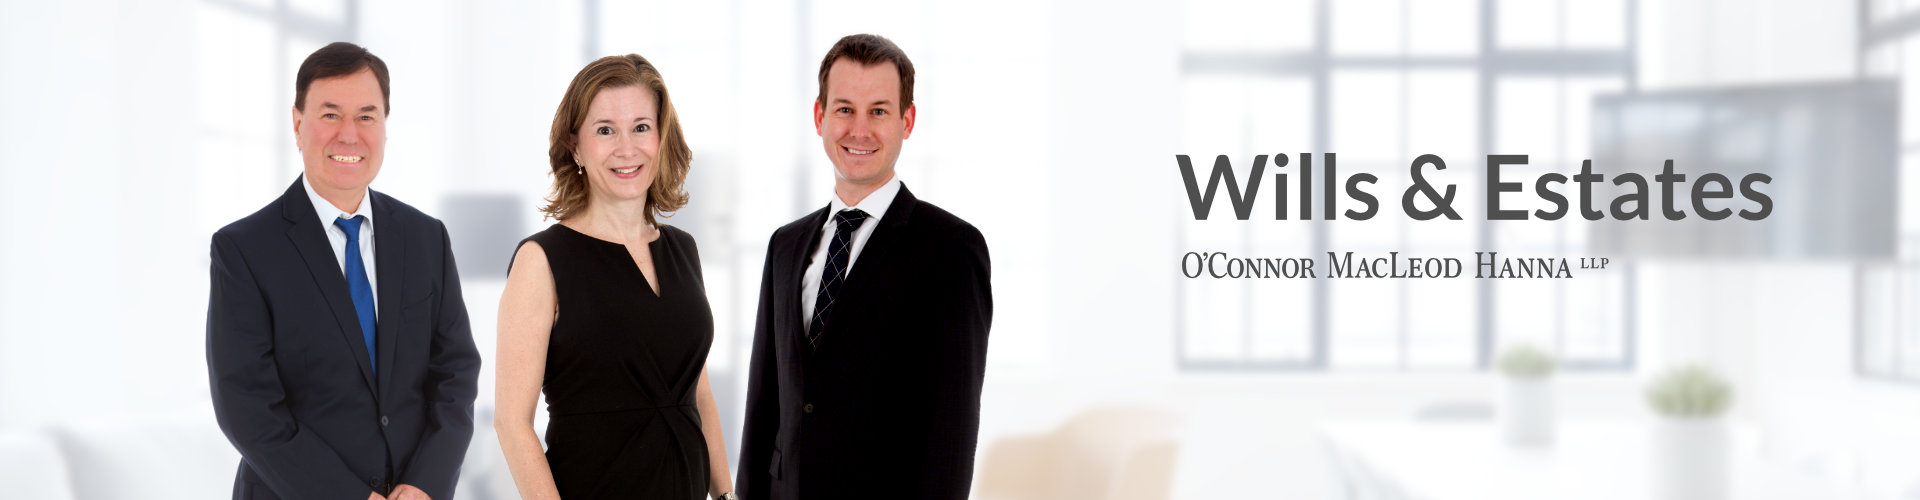 Wills & Estates Group Lawyers